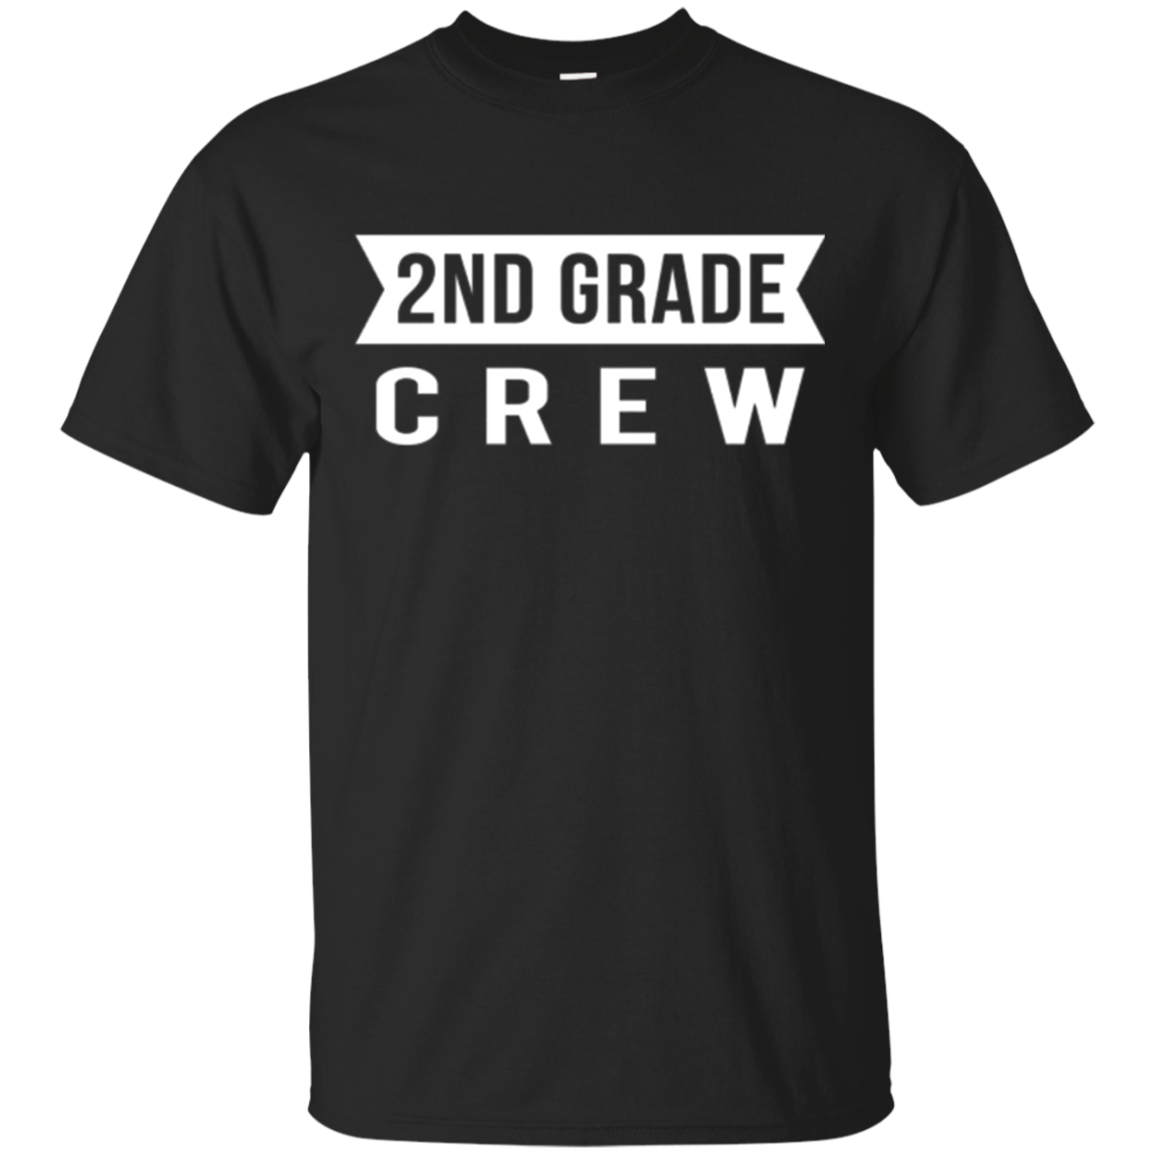 2nd Grade Crew school kids teachers 2017 funny gift t-shirt